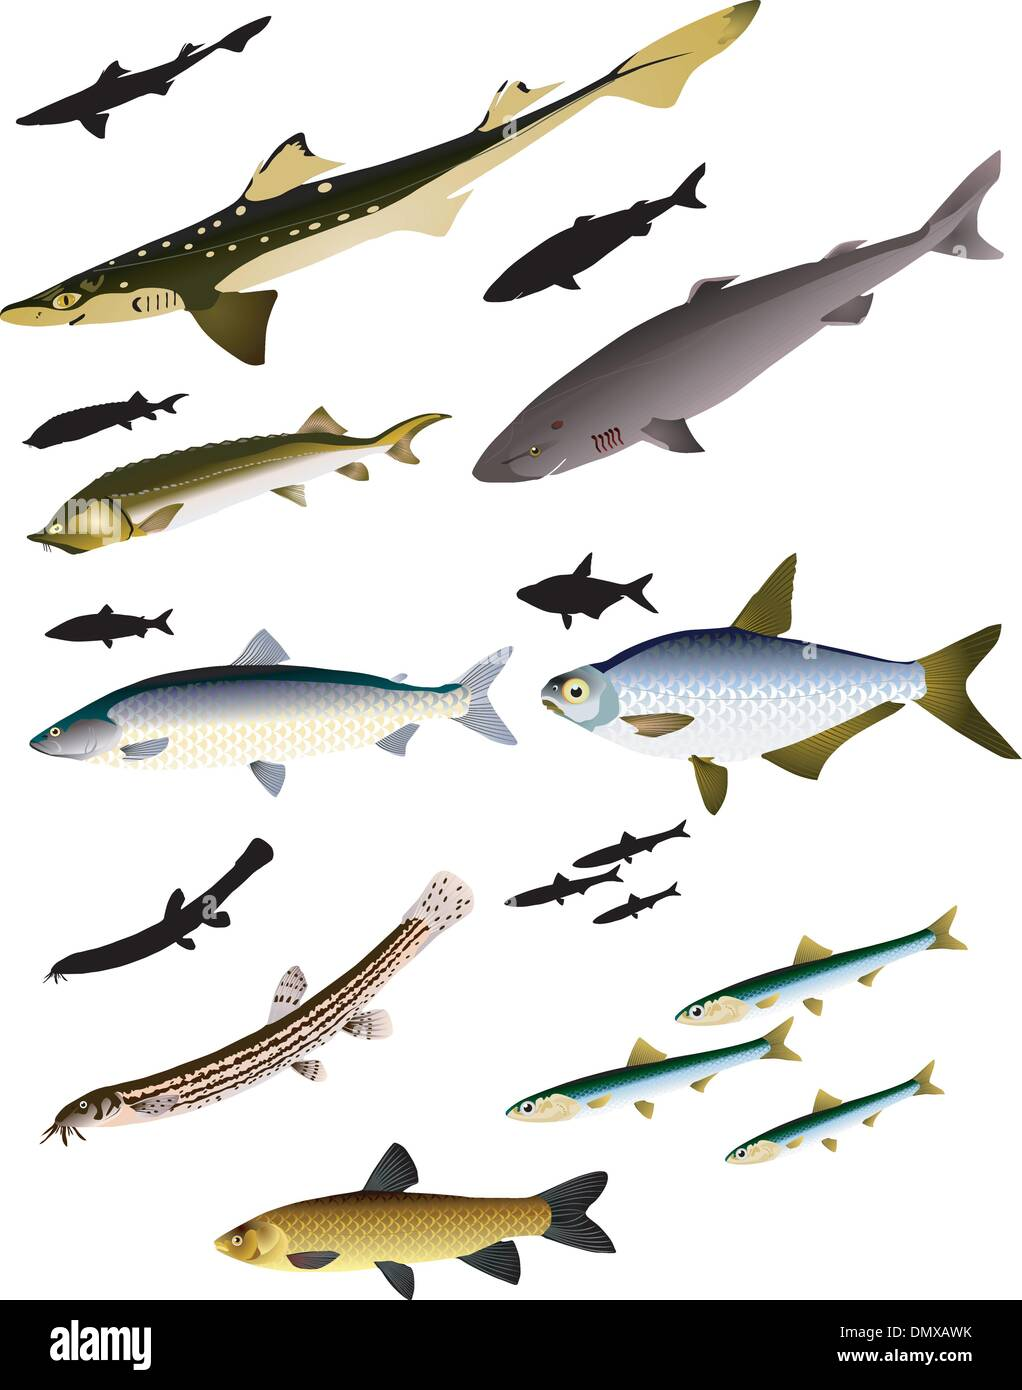 collection of vector images of fish - Stock Vector